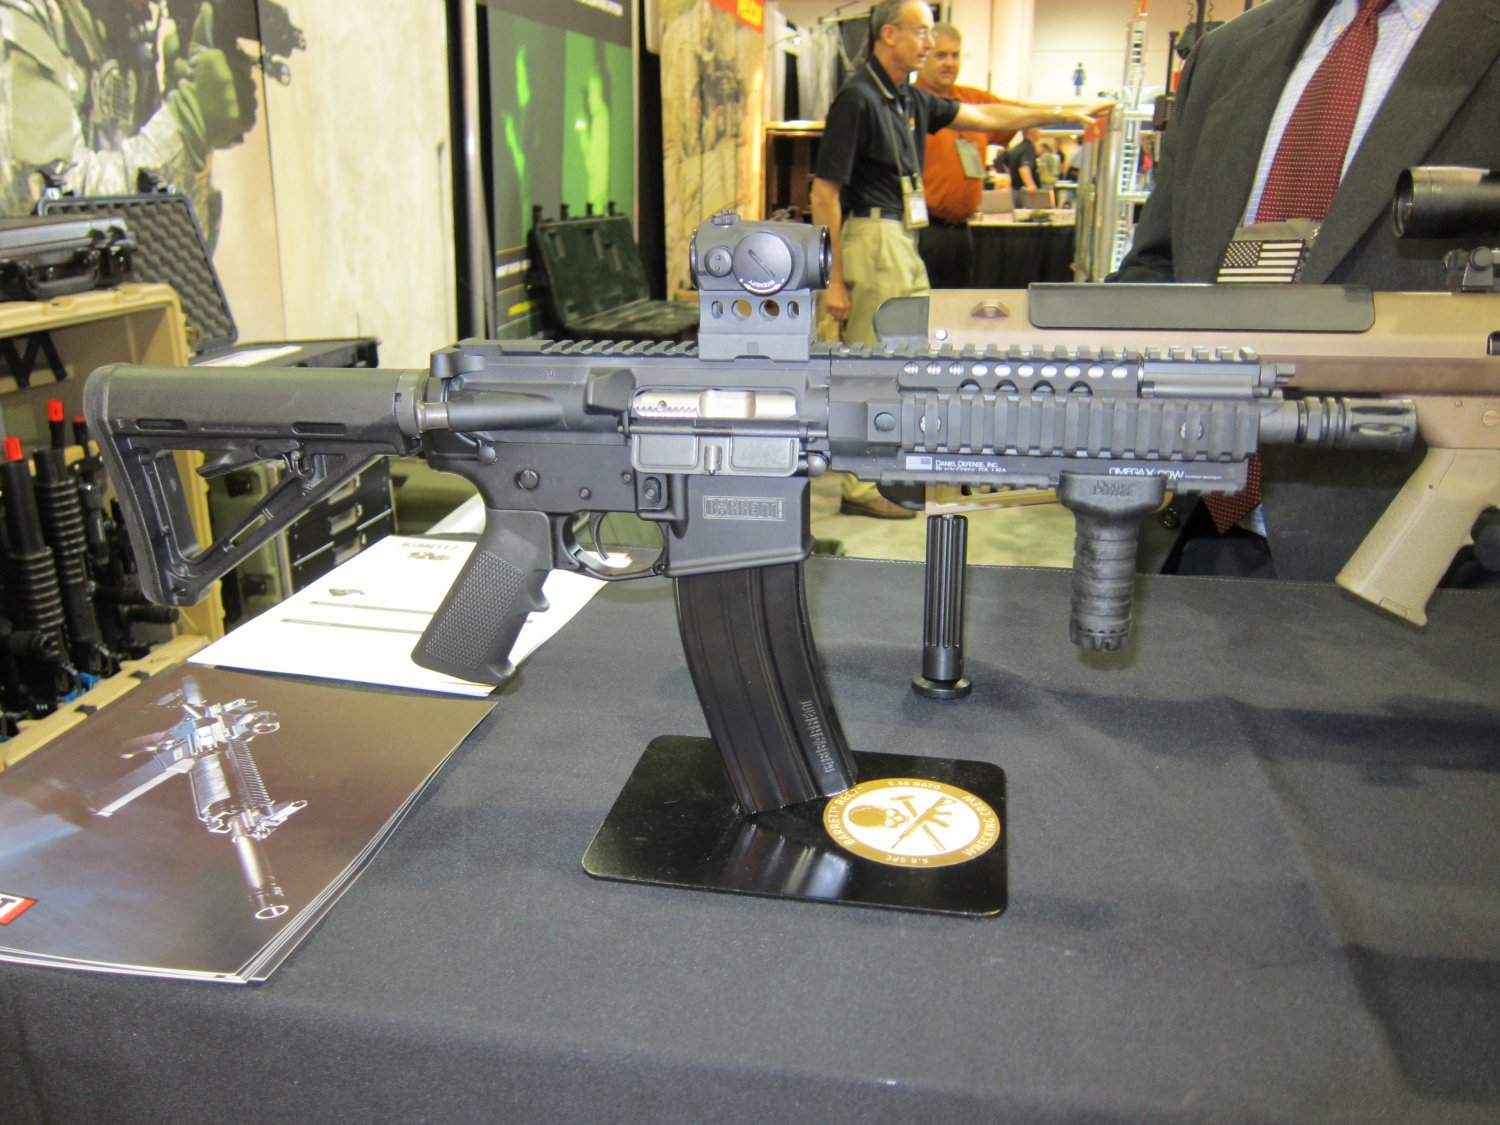 Barrett REC7 5.56mm AR SBR 20 Barrett REC7 5.56 8 Piston AR PDW Displayed at SOFIC 2010 (Photos!): 5.56mm NATO Piston Driven Tactical AR Carbine/SBR for Military Special Operations Forces (SOF)